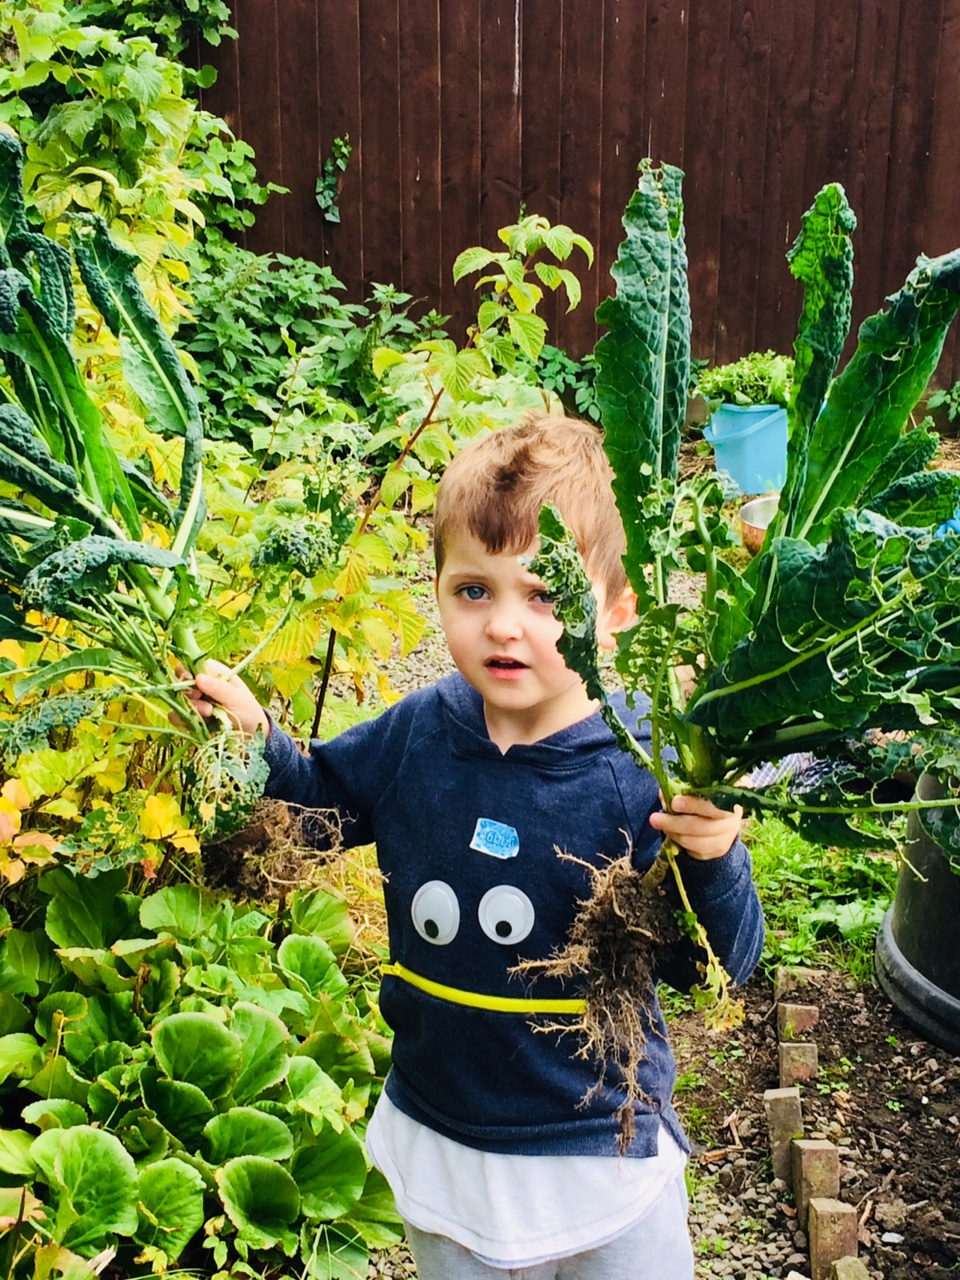 My son collecting Kale